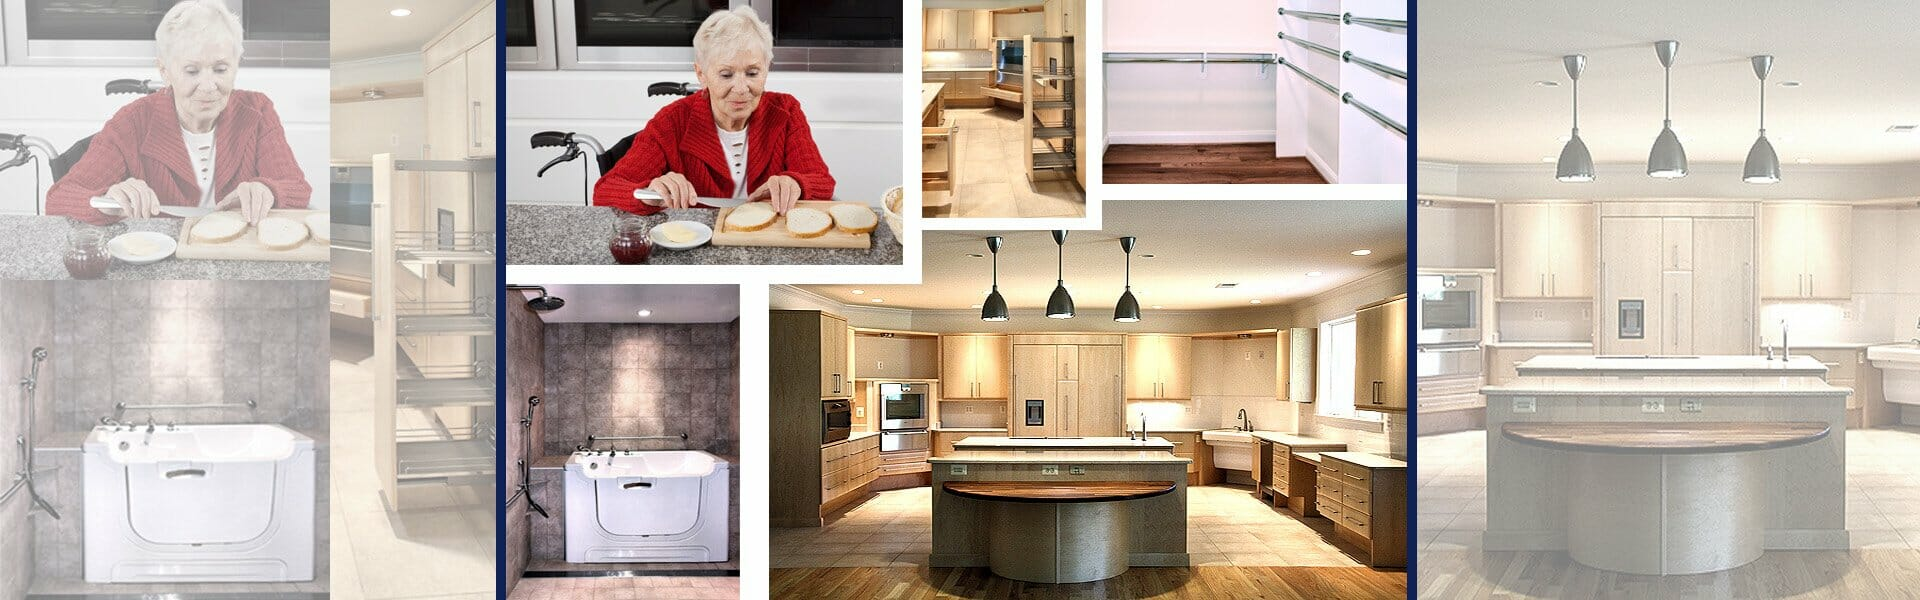 Golden Rule Builders universal design aging in place senior friendly home design build